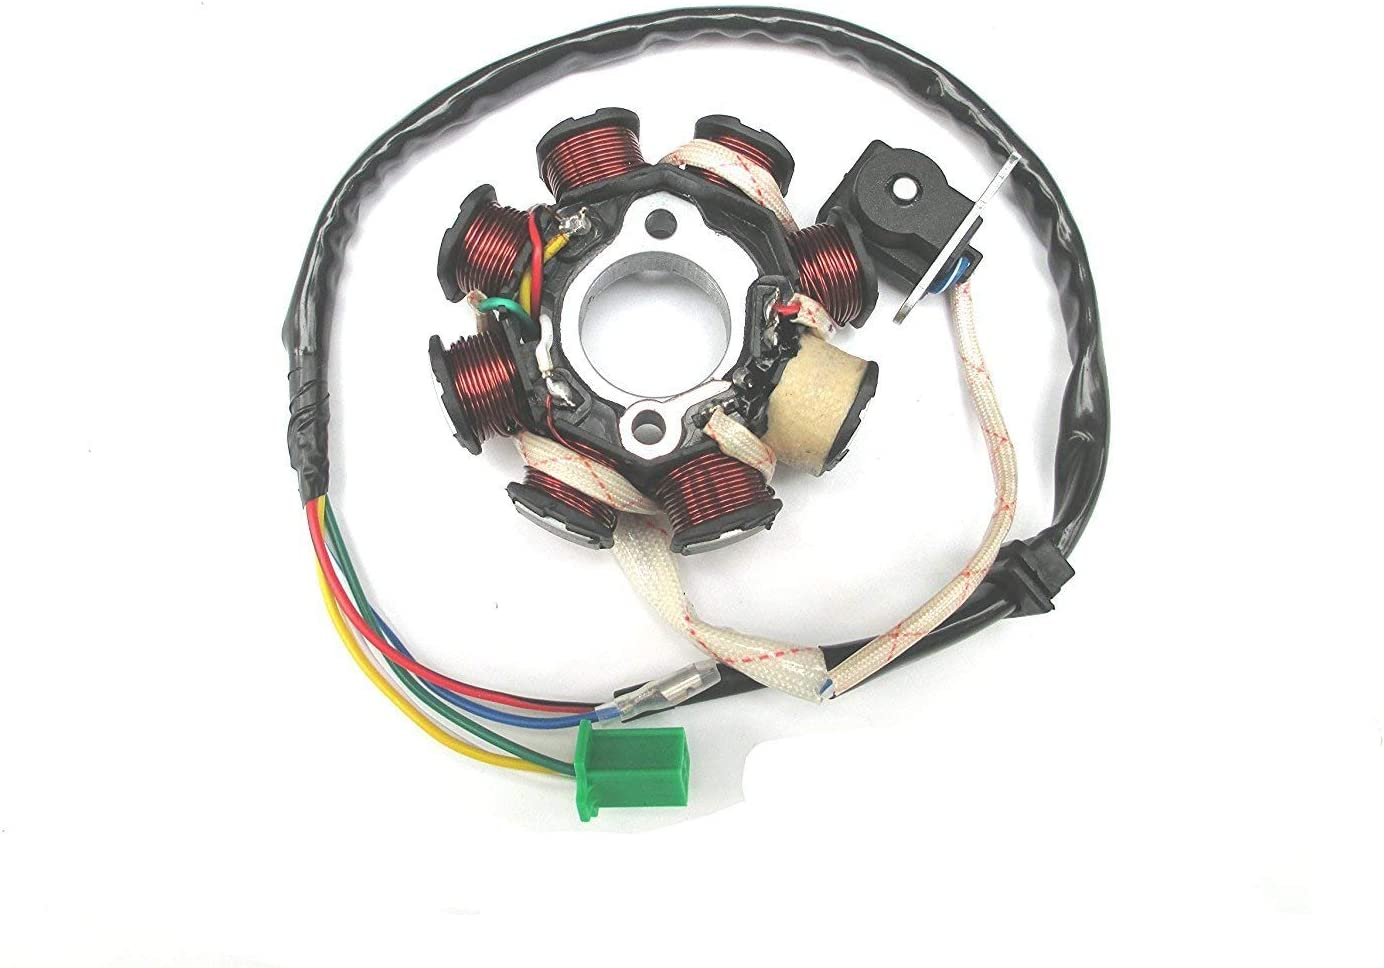 GY6 50CC 60CC 80CC 125cc 150cc Magneto Stator Ignition Coil 8 Pole 5 Wires replacement for Scooter Moped Go Kart ATV TAOTAO Paliden 150cc scooter